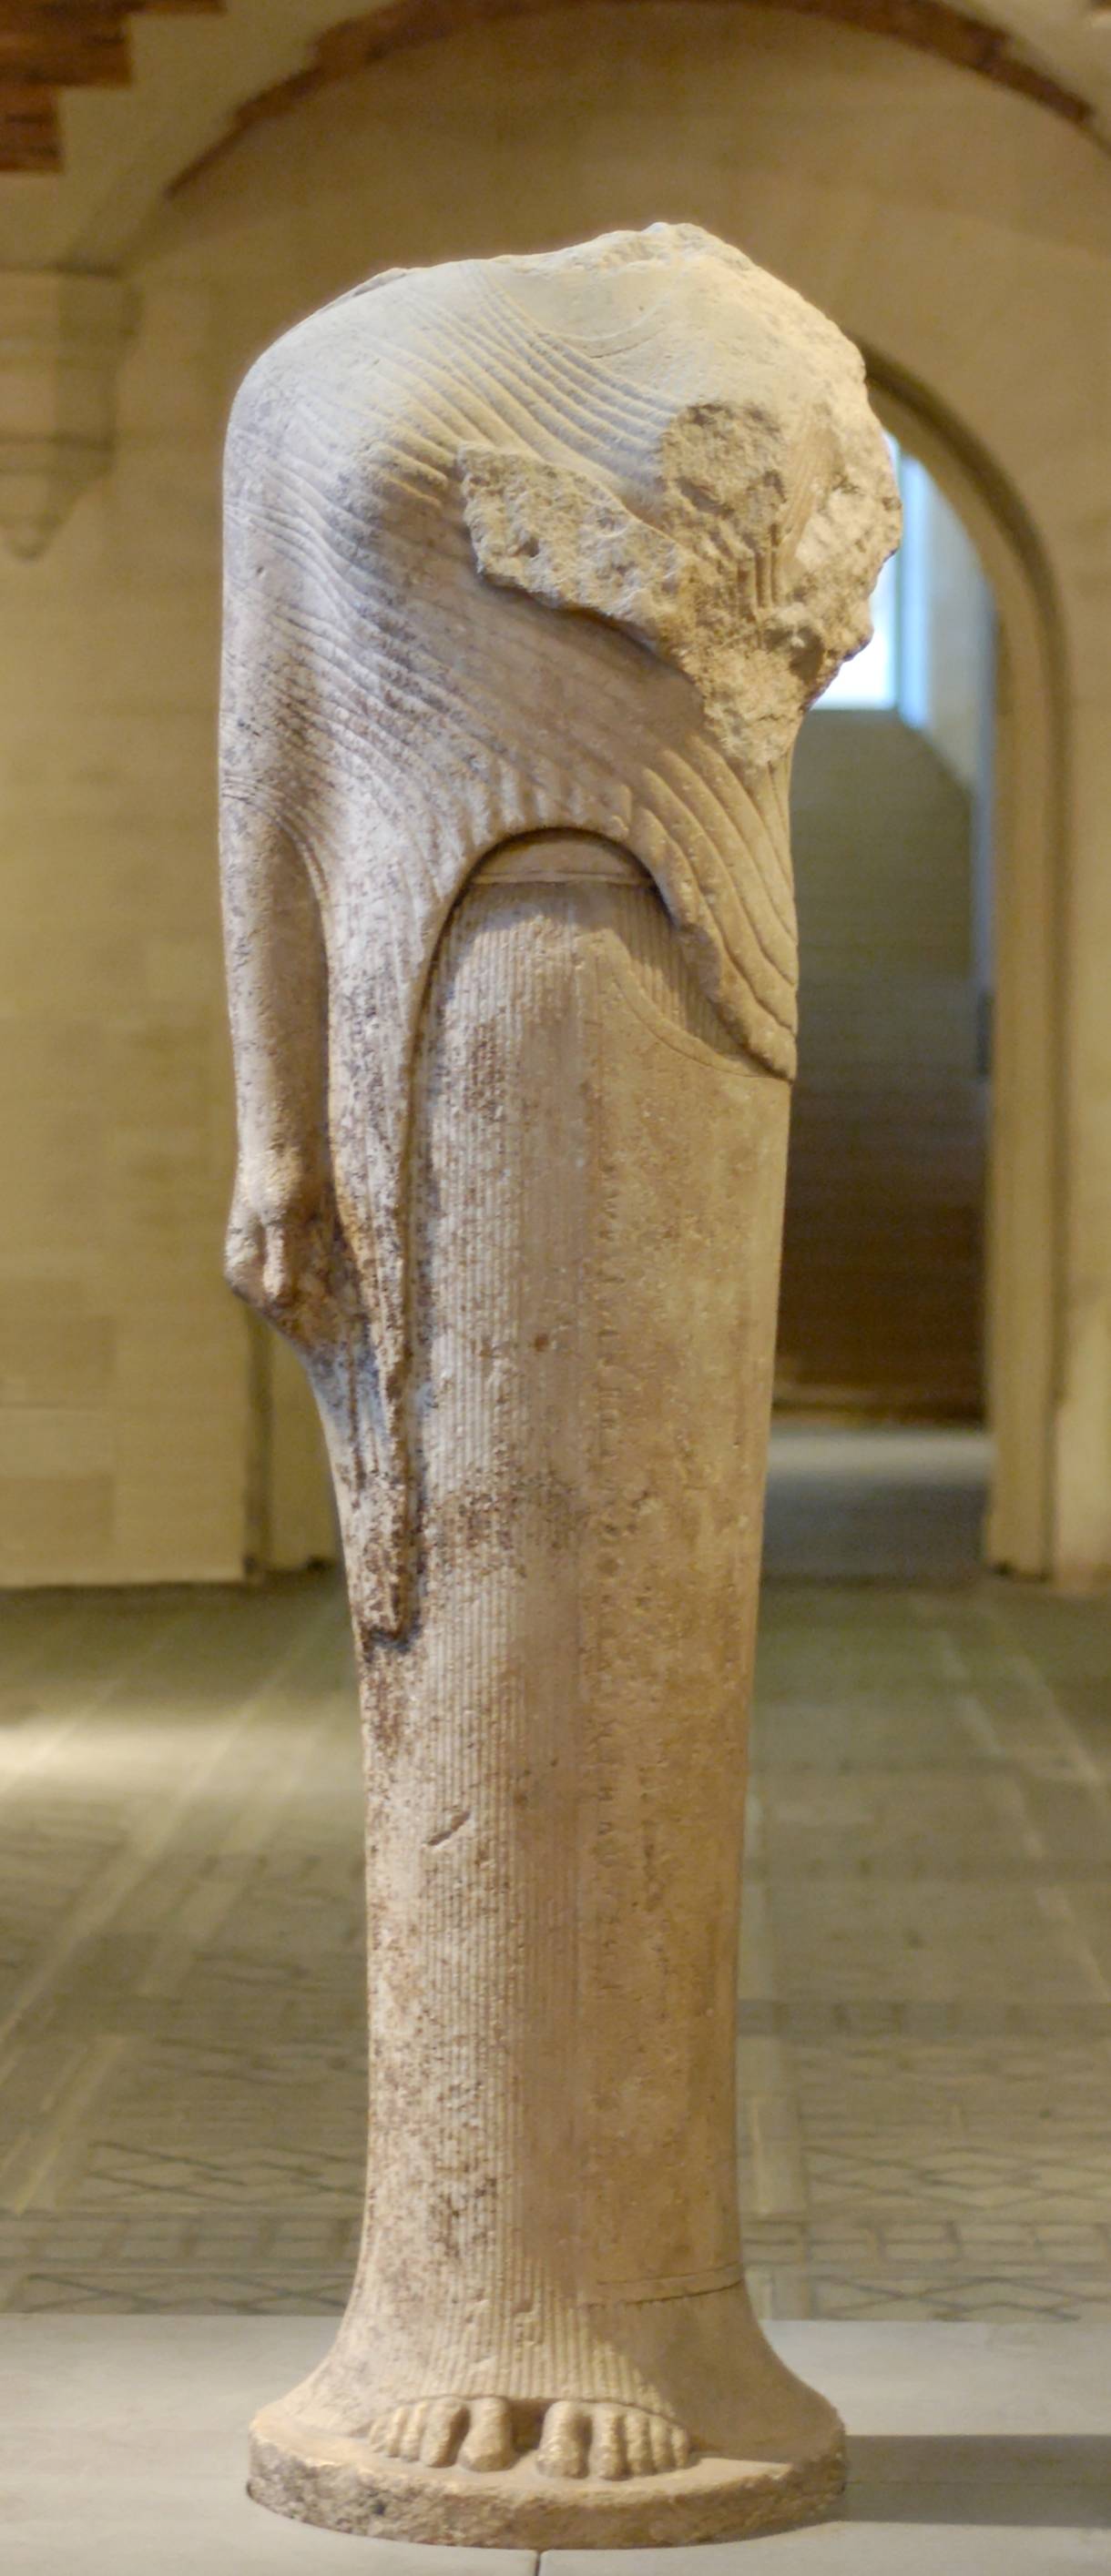 https://i2.wp.com/upload.wikimedia.org/wikipedia/commons/3/36/Kore_Heraion_Samos_Louvre_Ma686.jpg